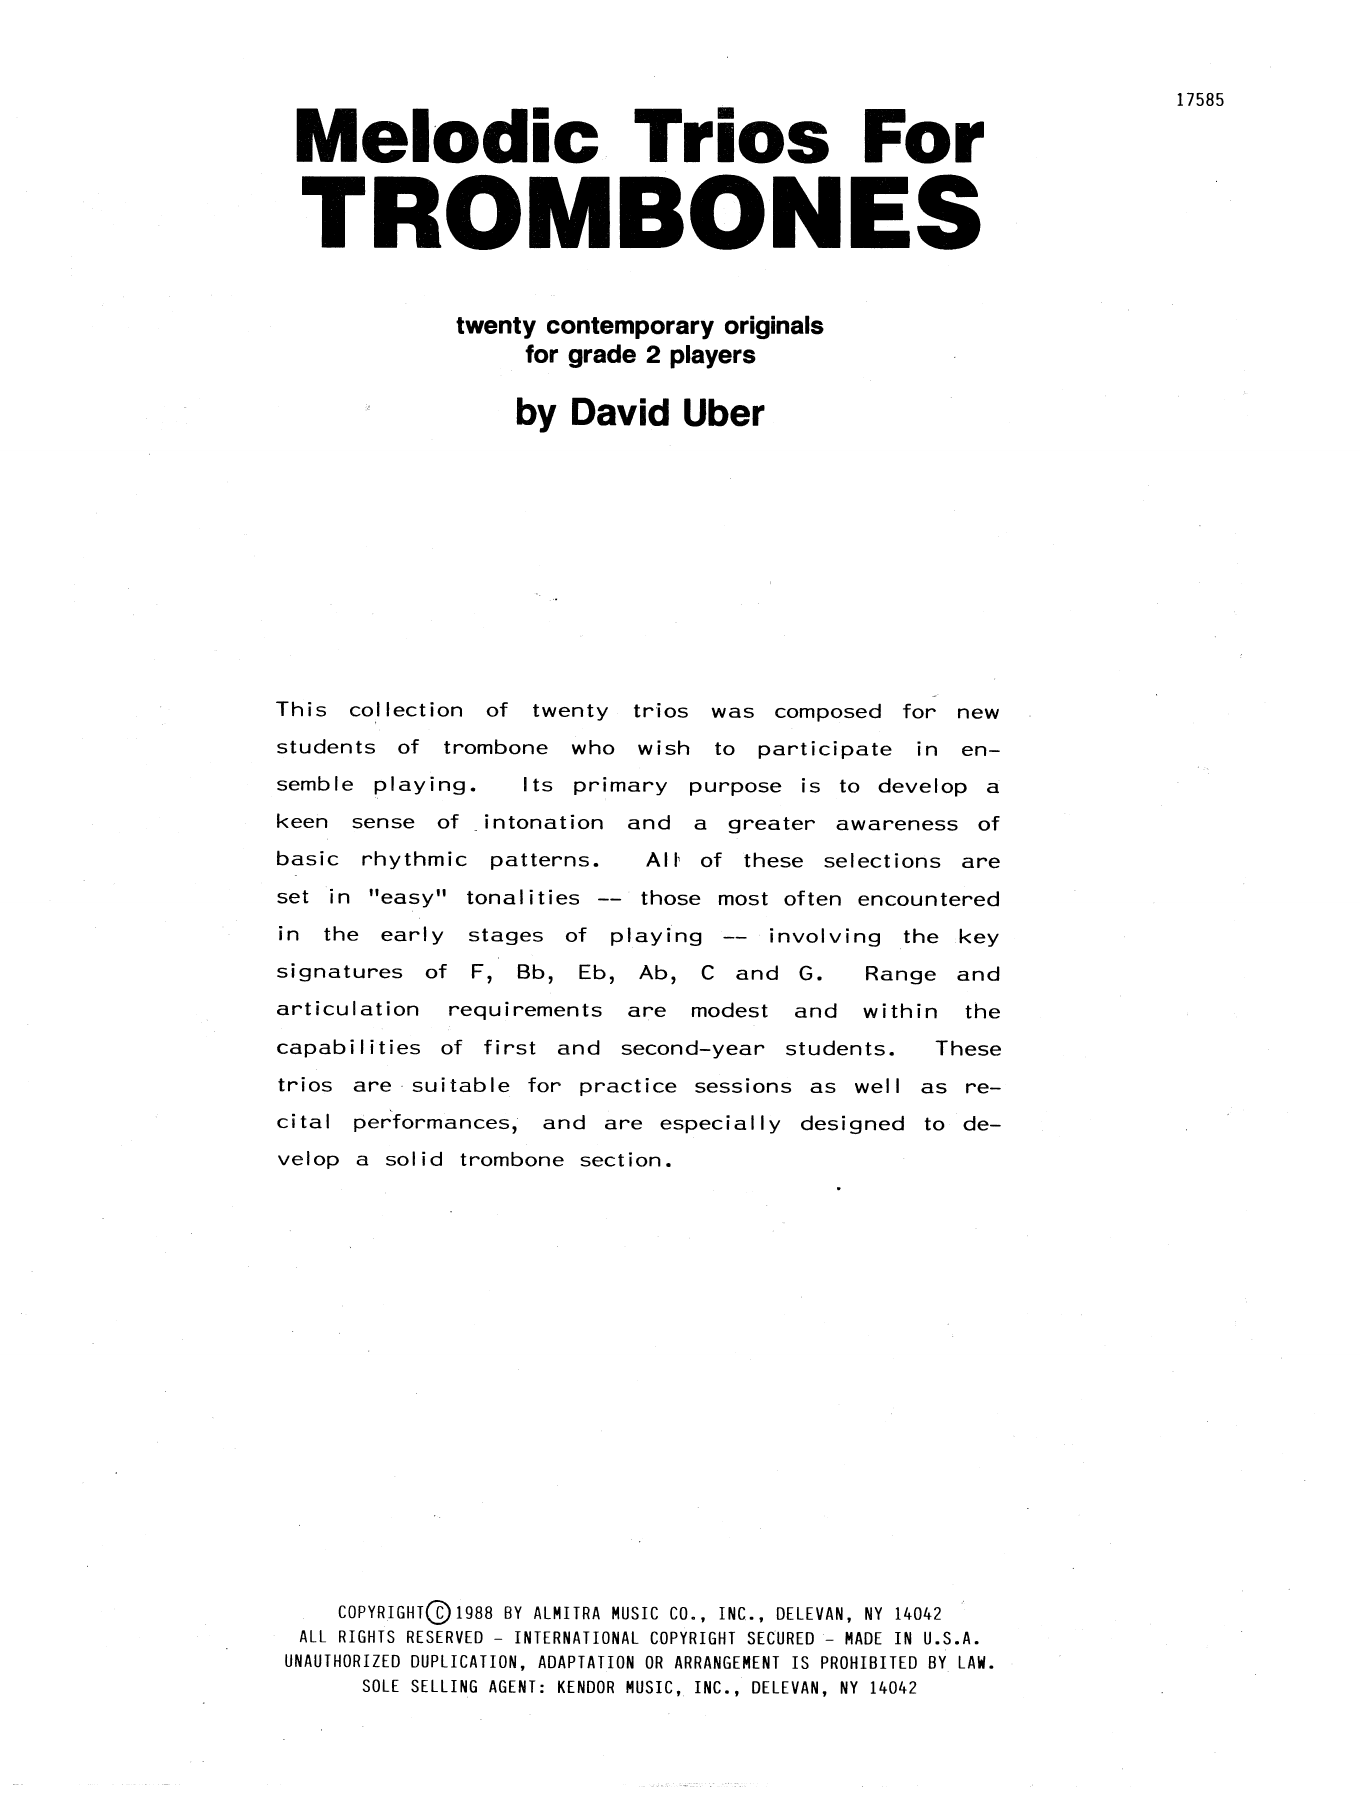 Melodic Trios For Trombones Sheet Music